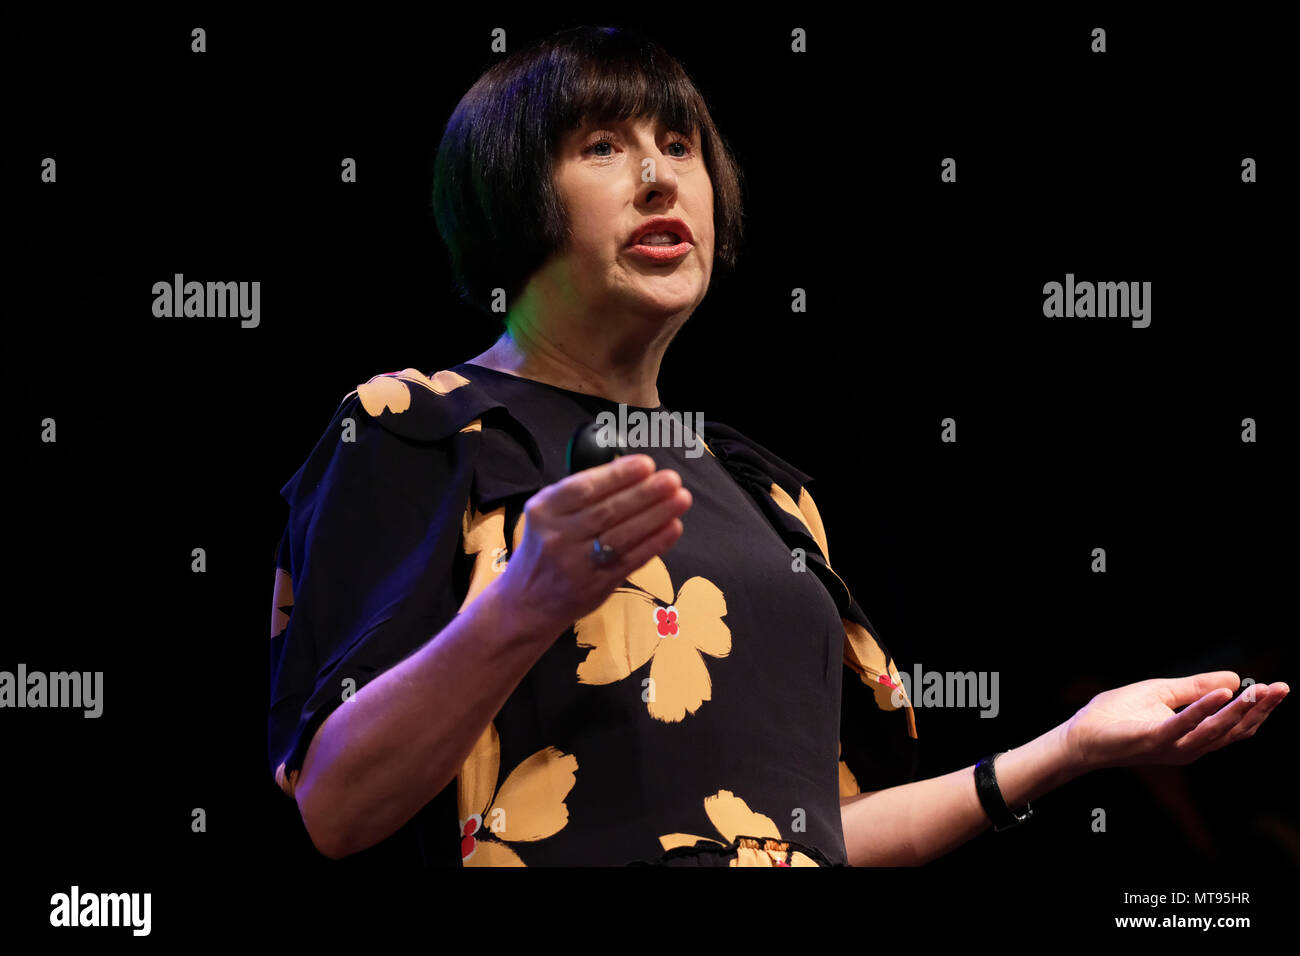 Hay Festival, Hay on Wye, UK - Tuesday 29th May 2018 - Alice Rawsthorn on stage at the Hay Festival talking about her book Design as an Attitude - Photo Steven May / Alamy Live News - Stock Image